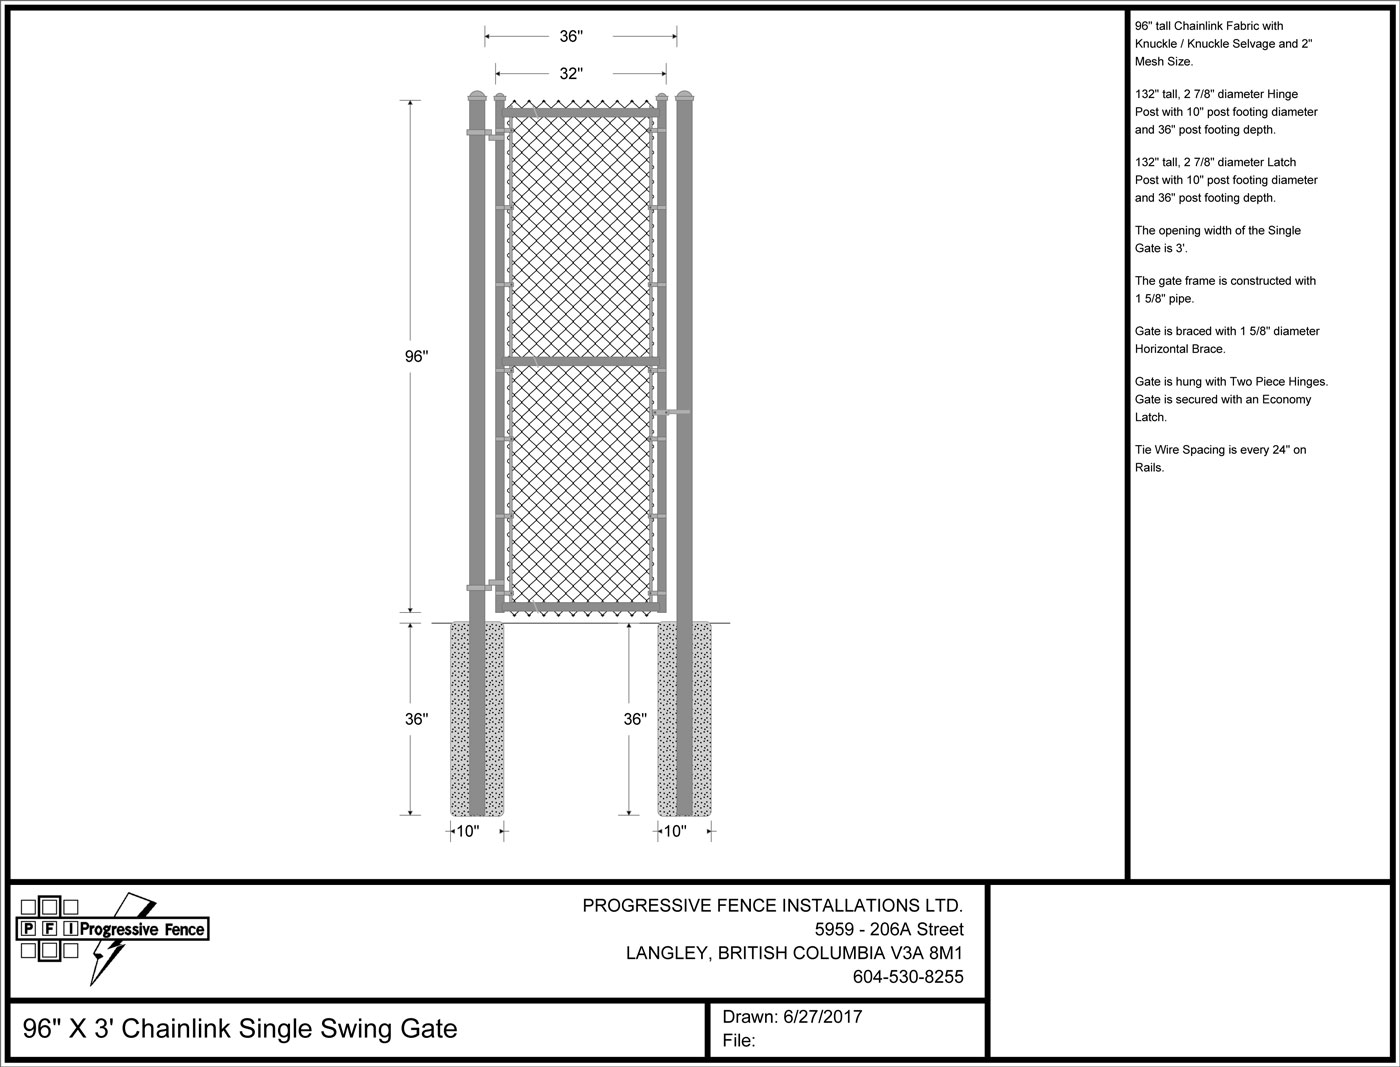 Shop Drawings Progressive Fence